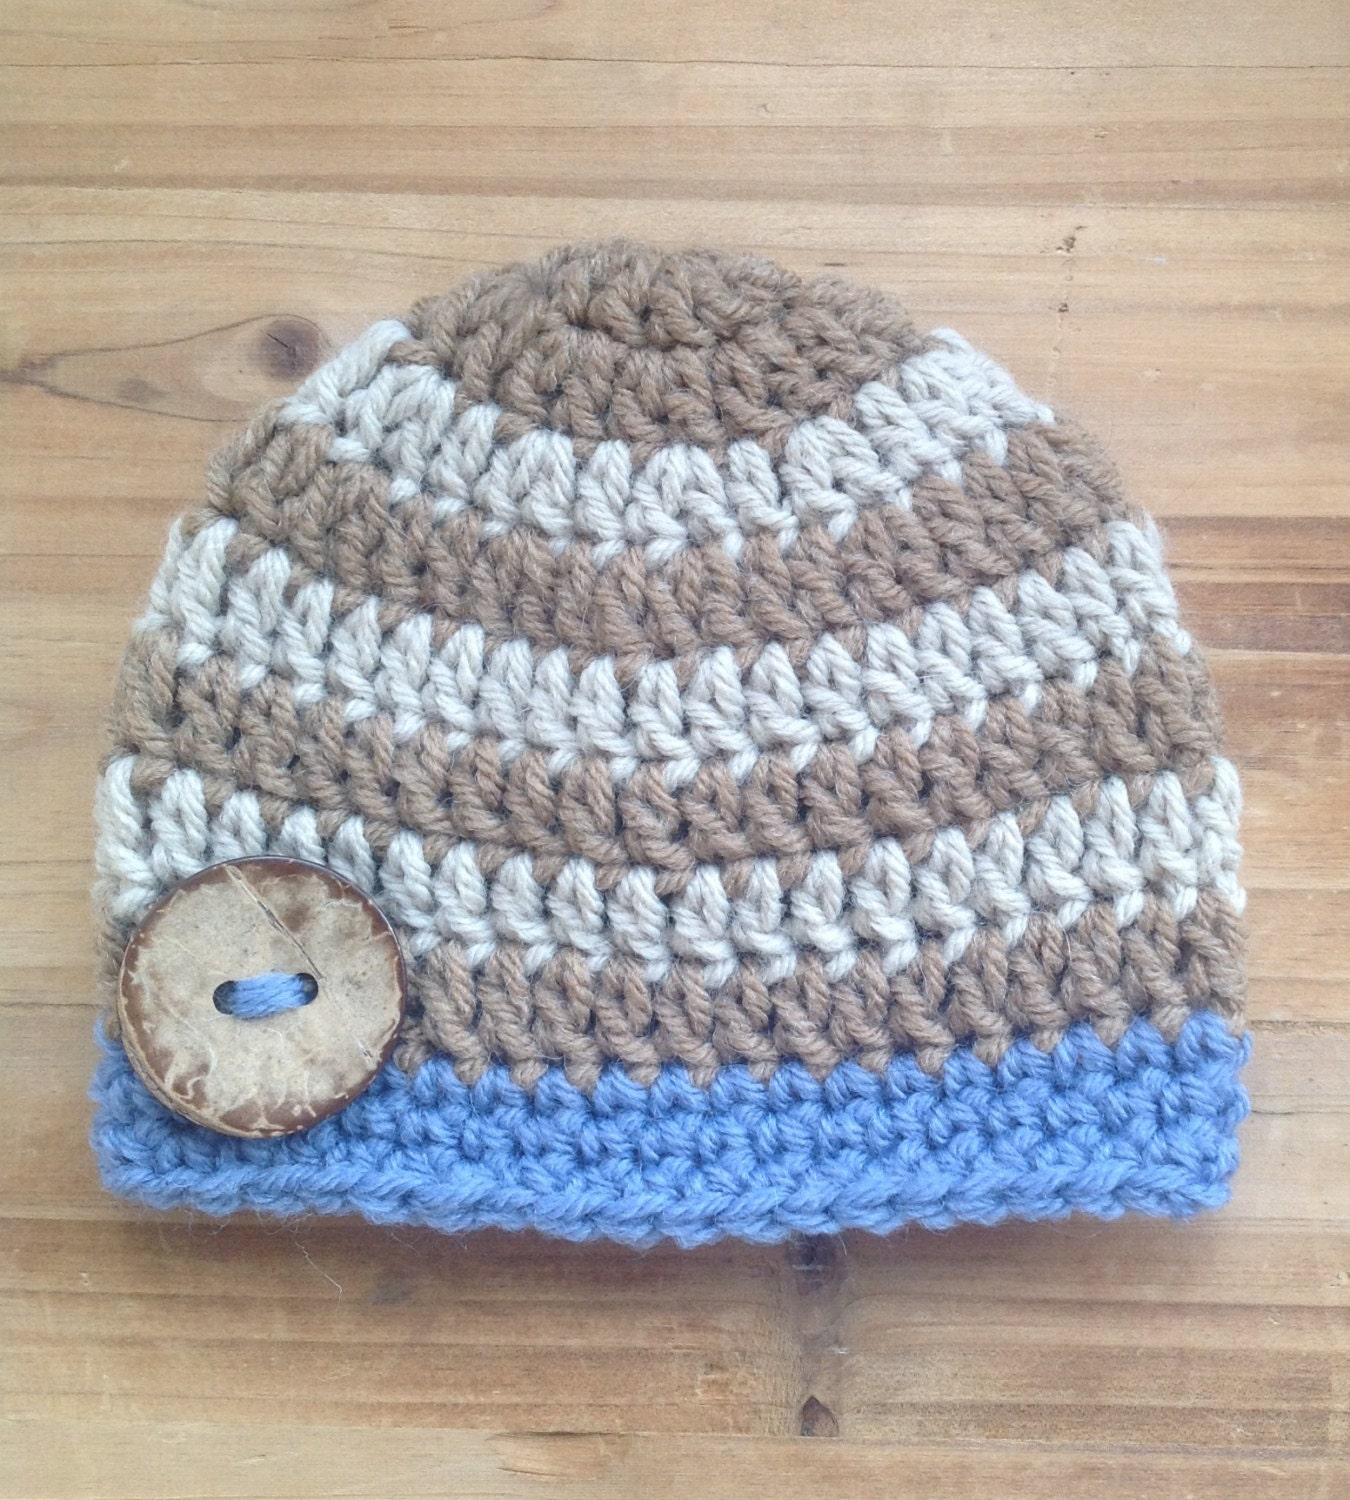 Crochet Baby Hat Infant Hat Striped Baby Hat Brown Blue Tan